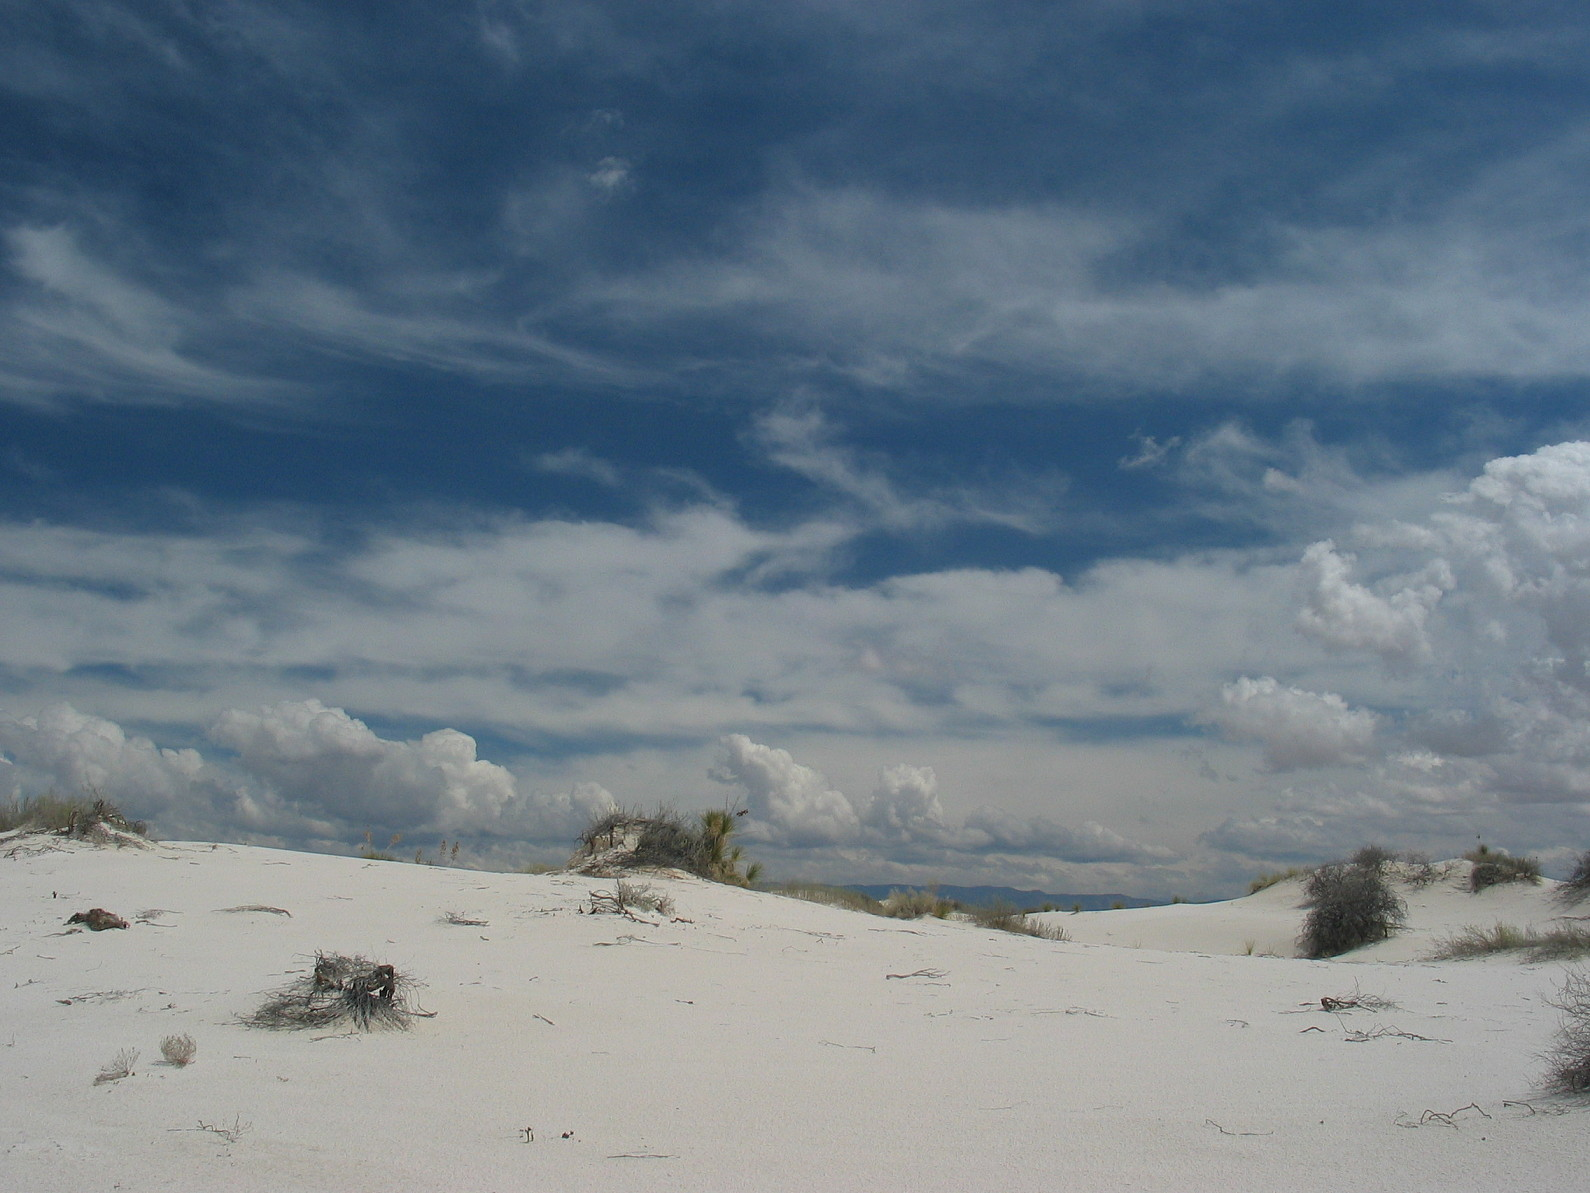 http://upload.wikimedia.org/wikipedia/commons/e/e2/White_sands_vegetation.jpg